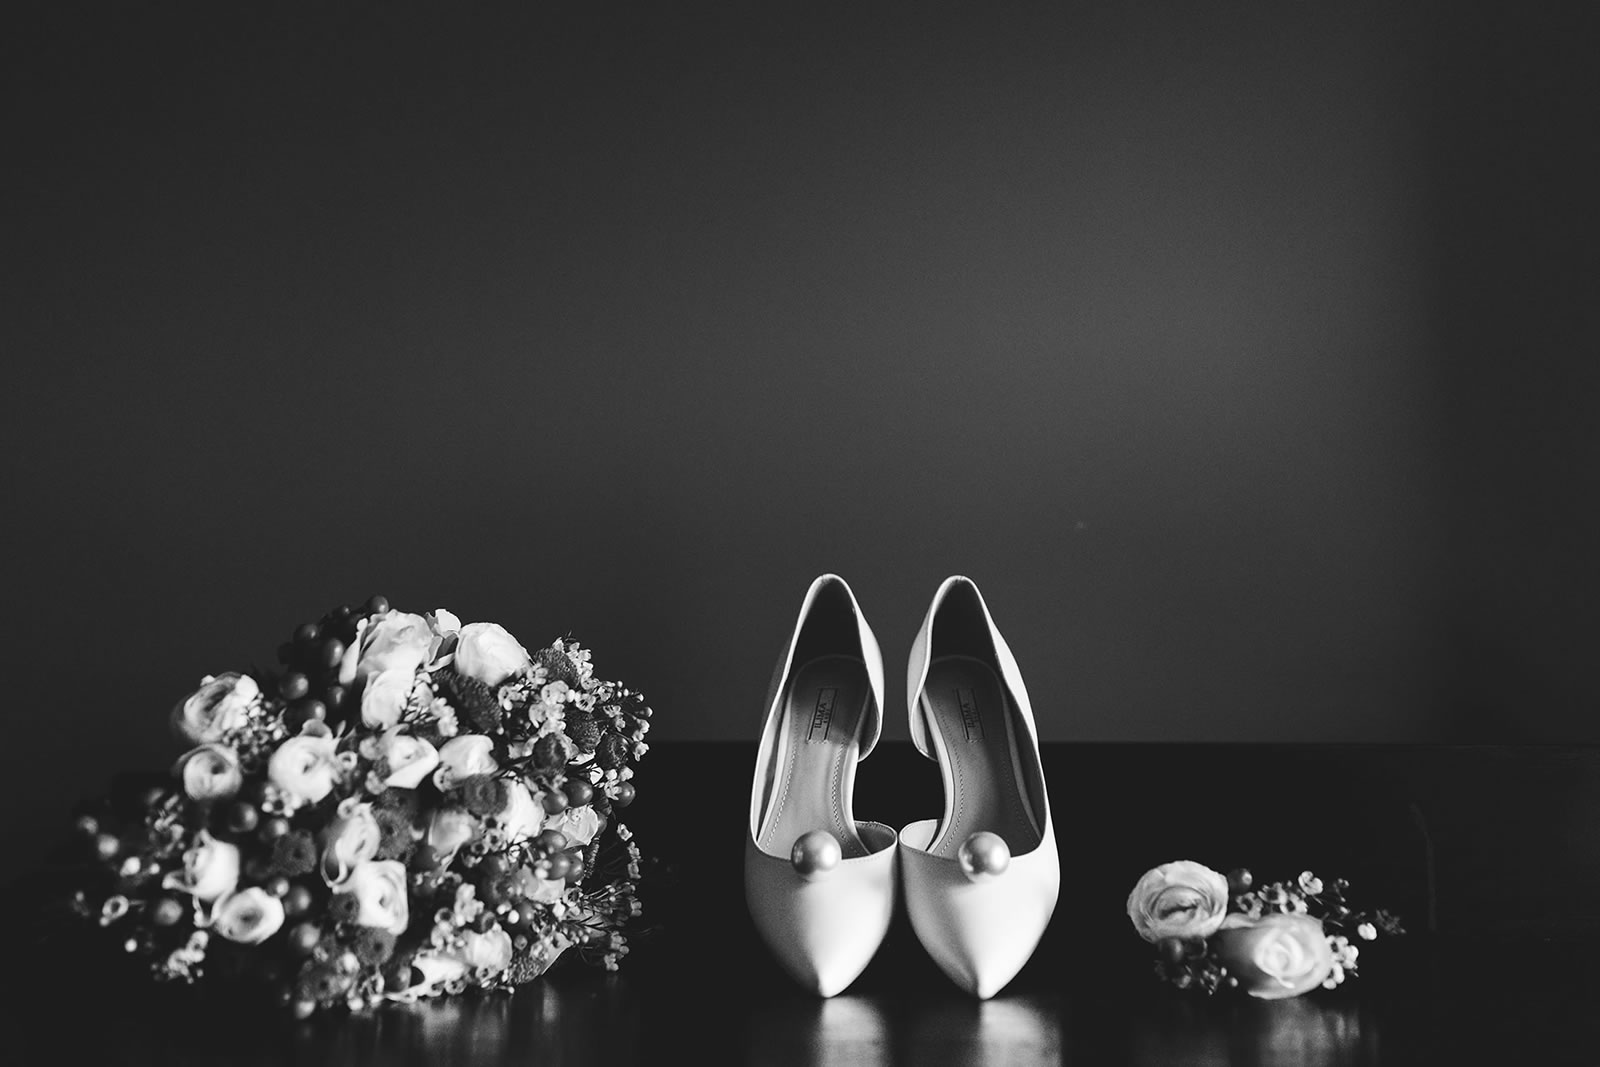 getting ready :: Alessia Franco :: Black and white wedding photographer based in Florence, Tuscany, Italy :: Alessia Franco